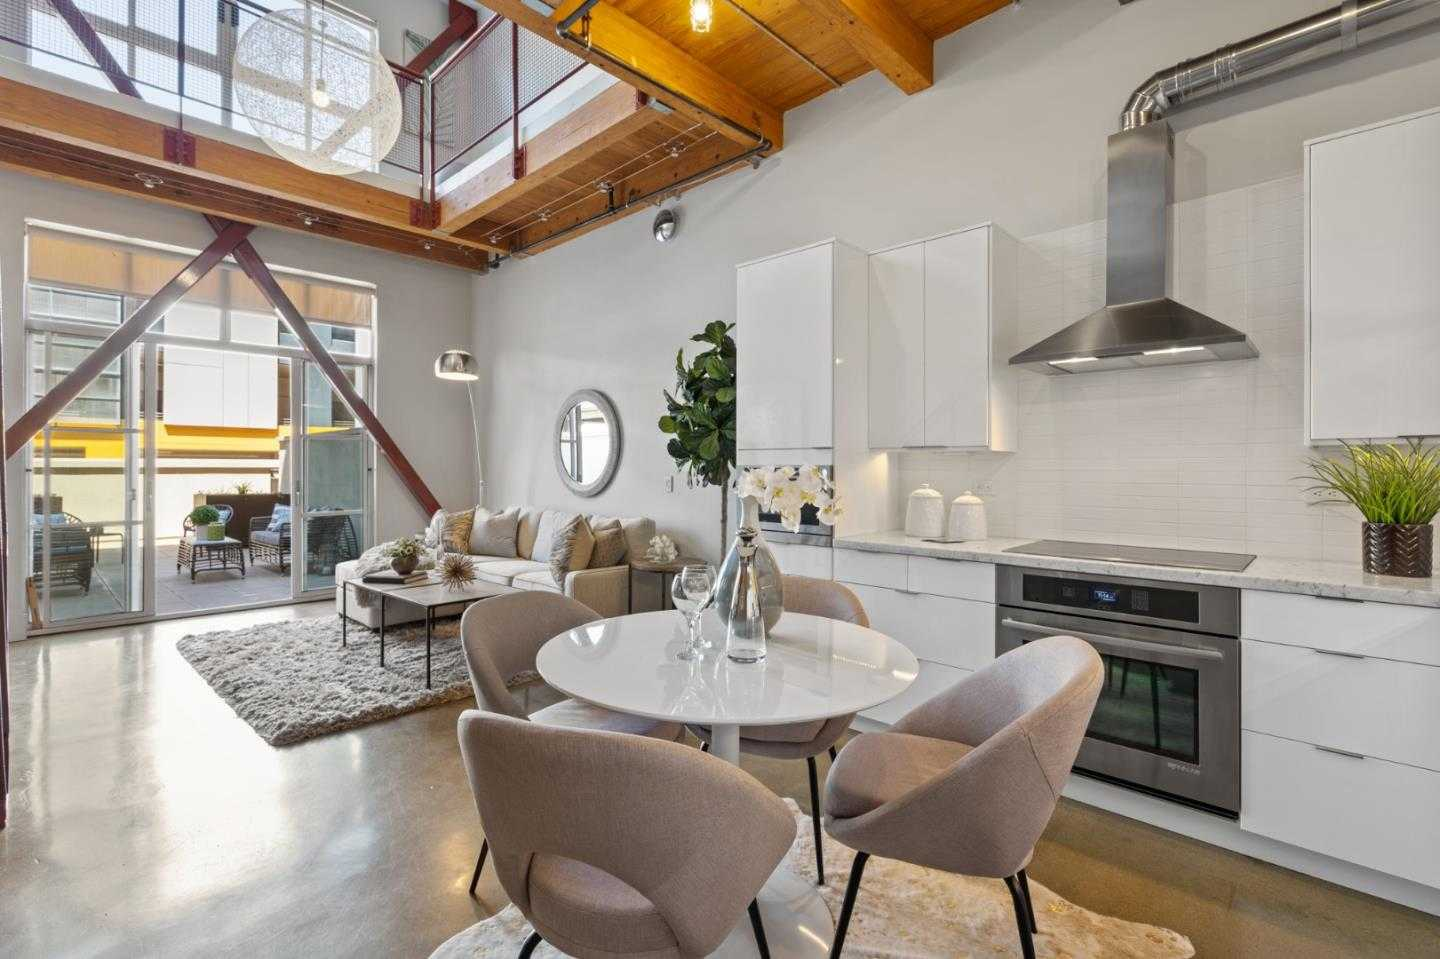 $1,348,000 - 2Br/2Ba -  for Sale in San Jose